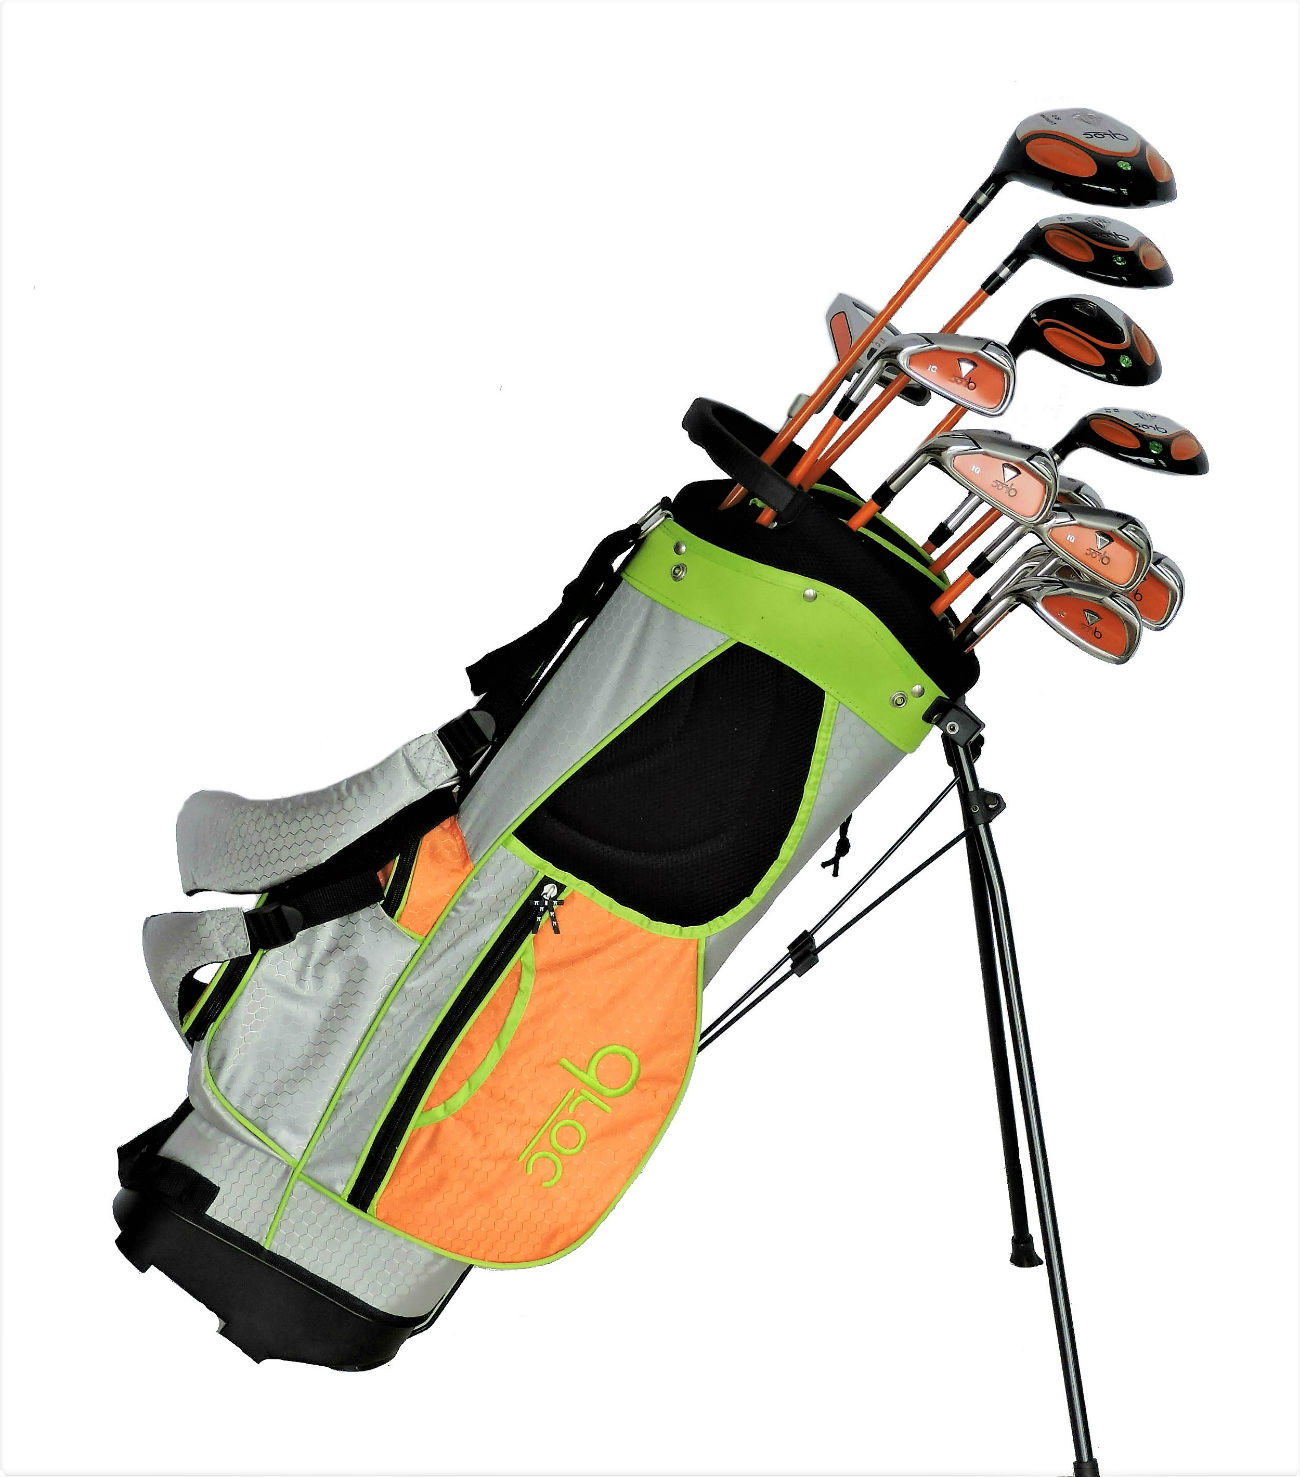 DROC - Dimond Series *13*  Pcs Golf Club Set & Golf Bag Age 9 - 12 Left Handed